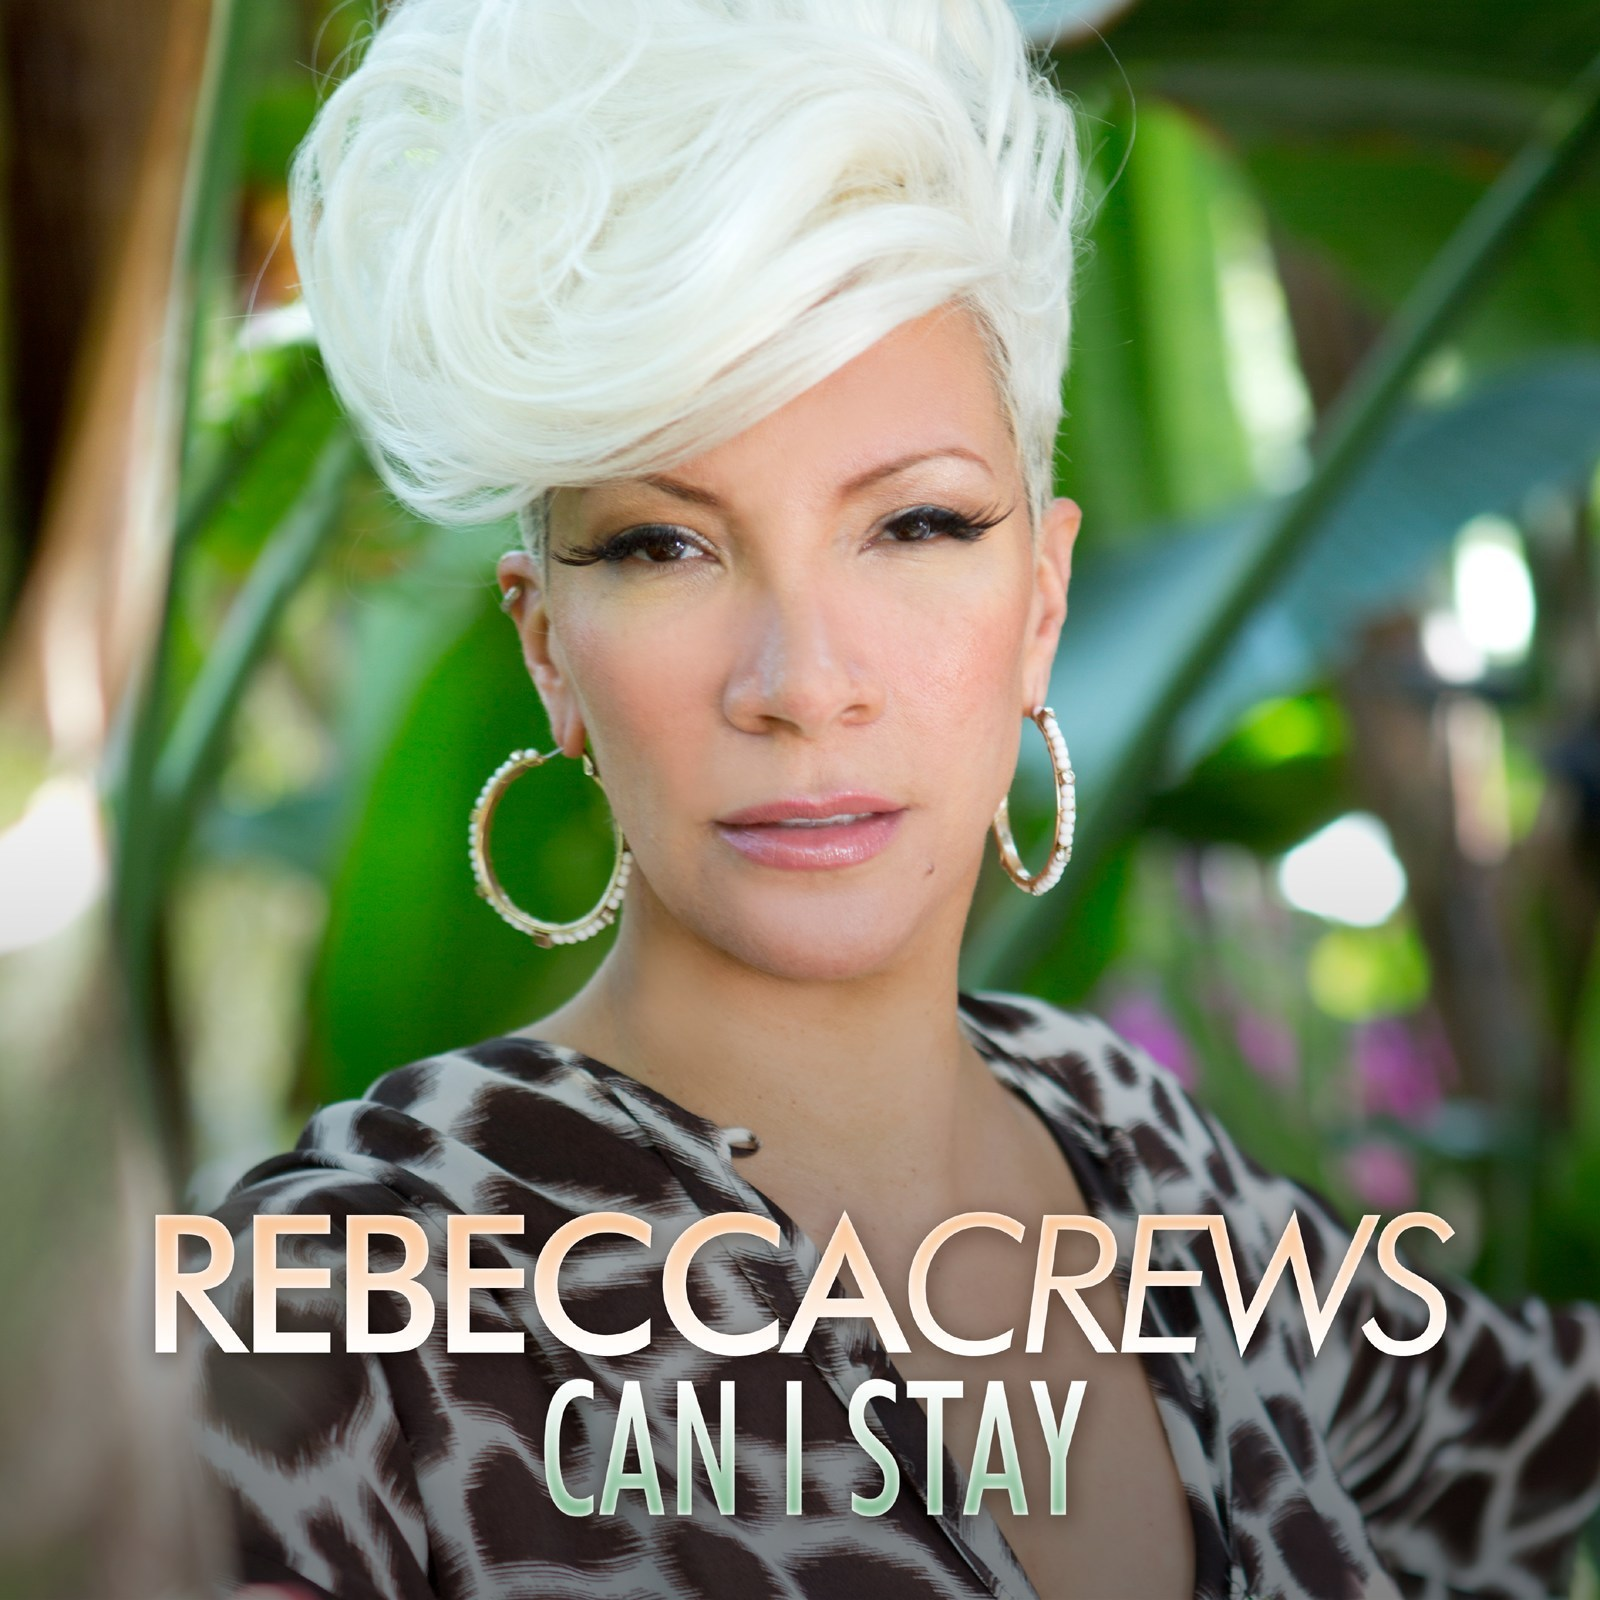 Reality Star Rebecca Crews Debuts Single 'Can I Stay' Today